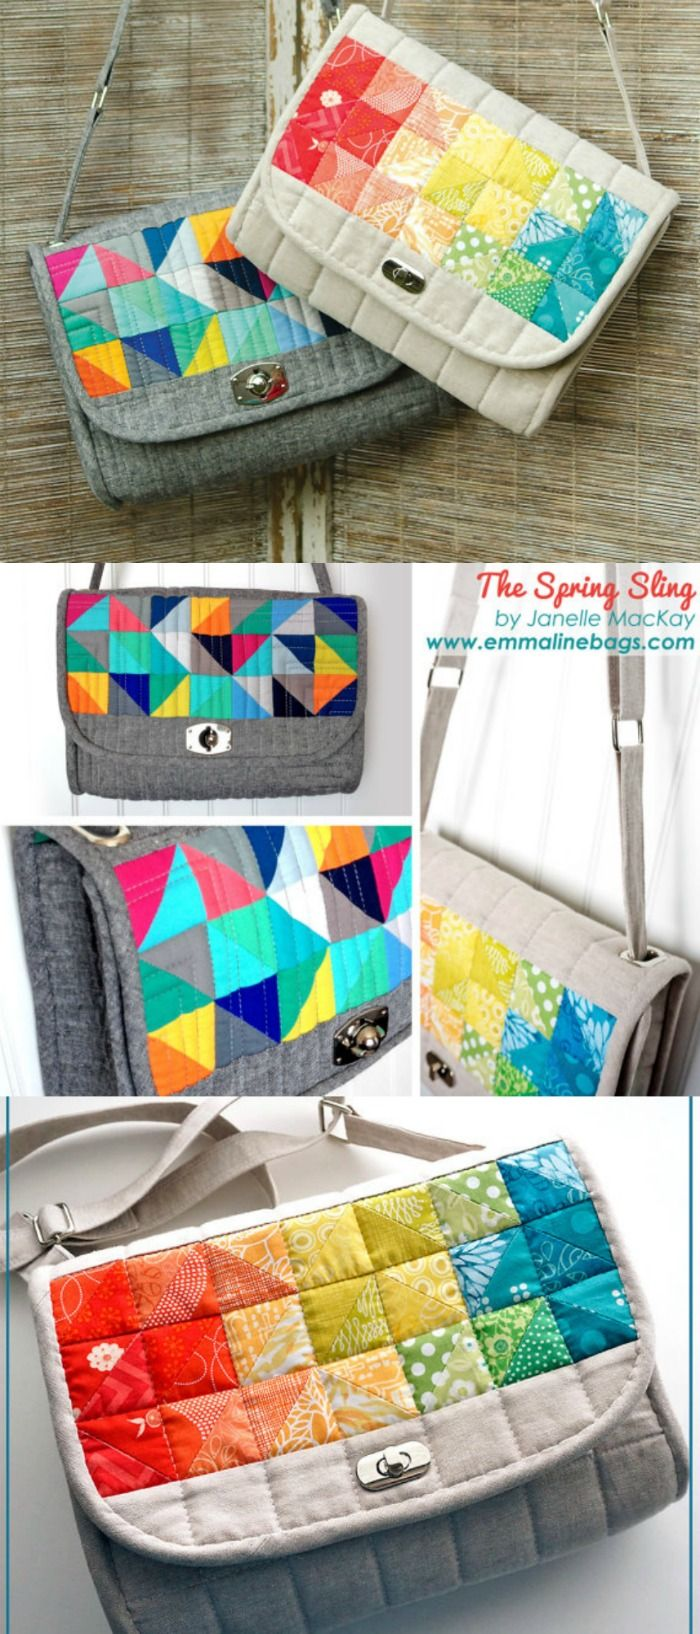 Gorgeous bag sewing pattern. I love the patchwork style flap and the quilting on this purse sewing pattern.